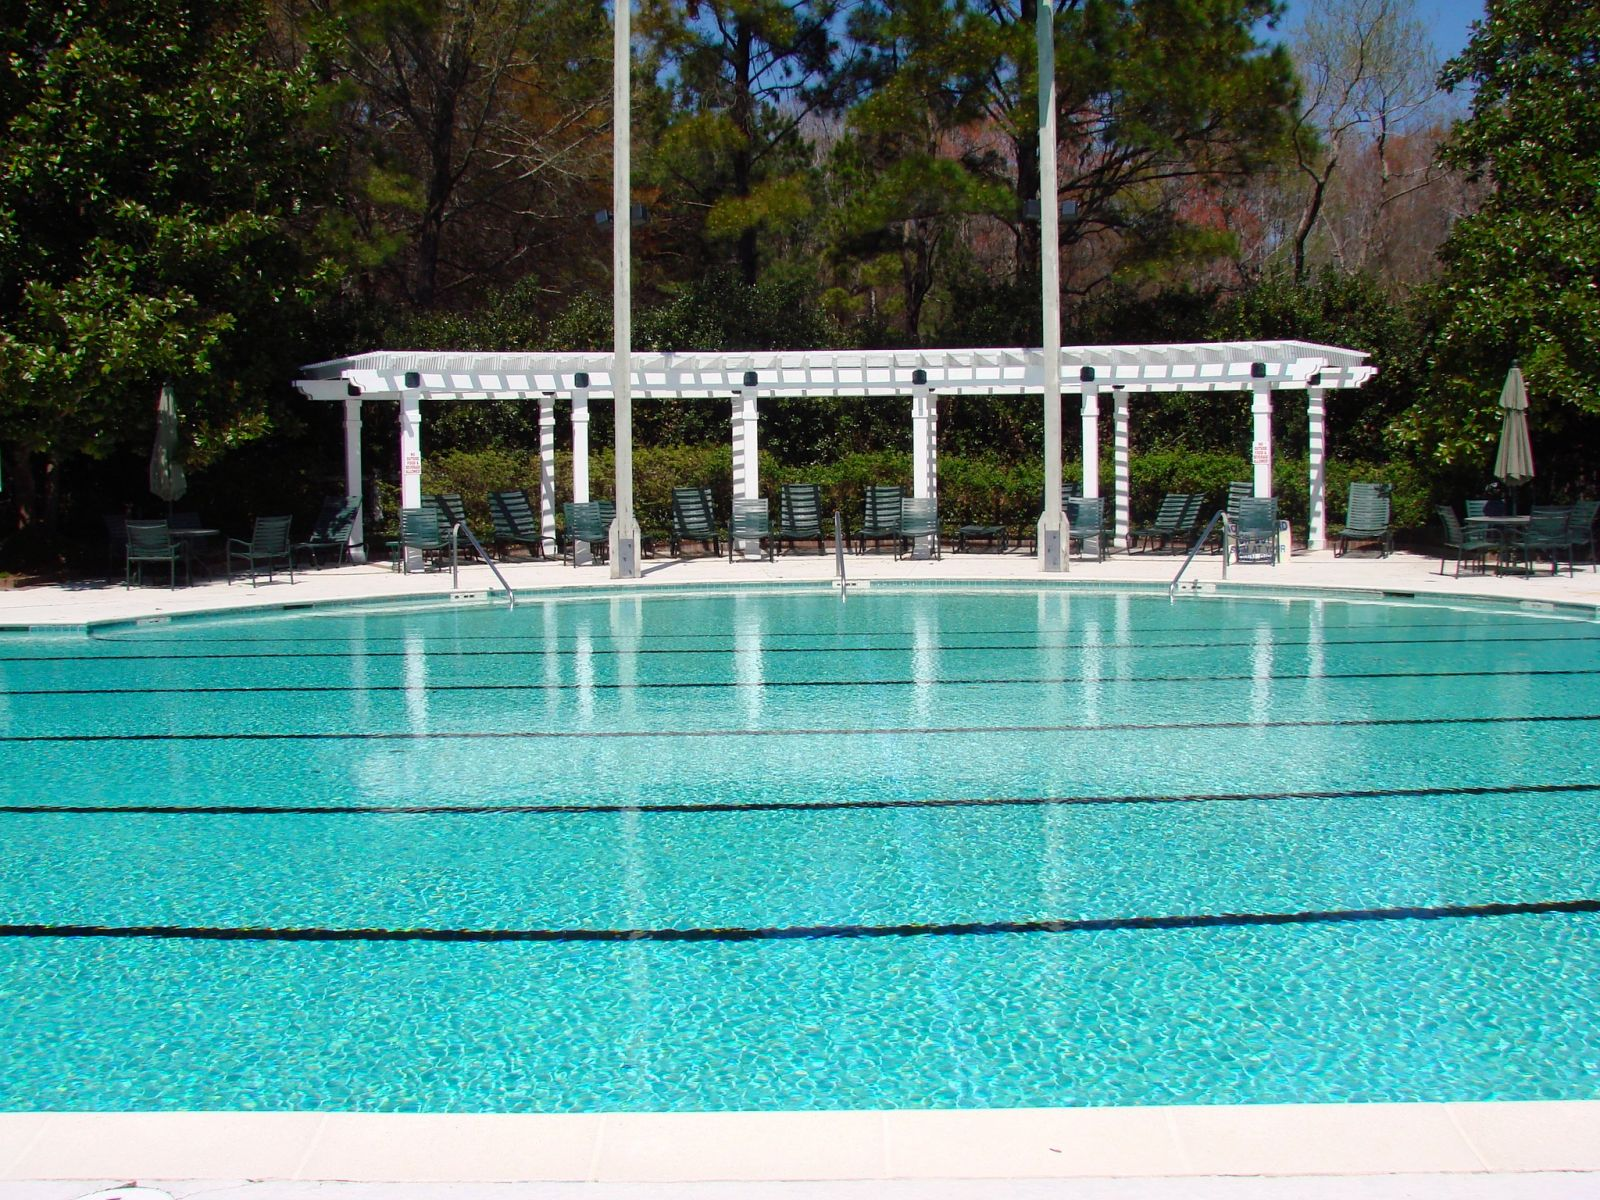 Family Pool at Cooscaw Creek Country Club